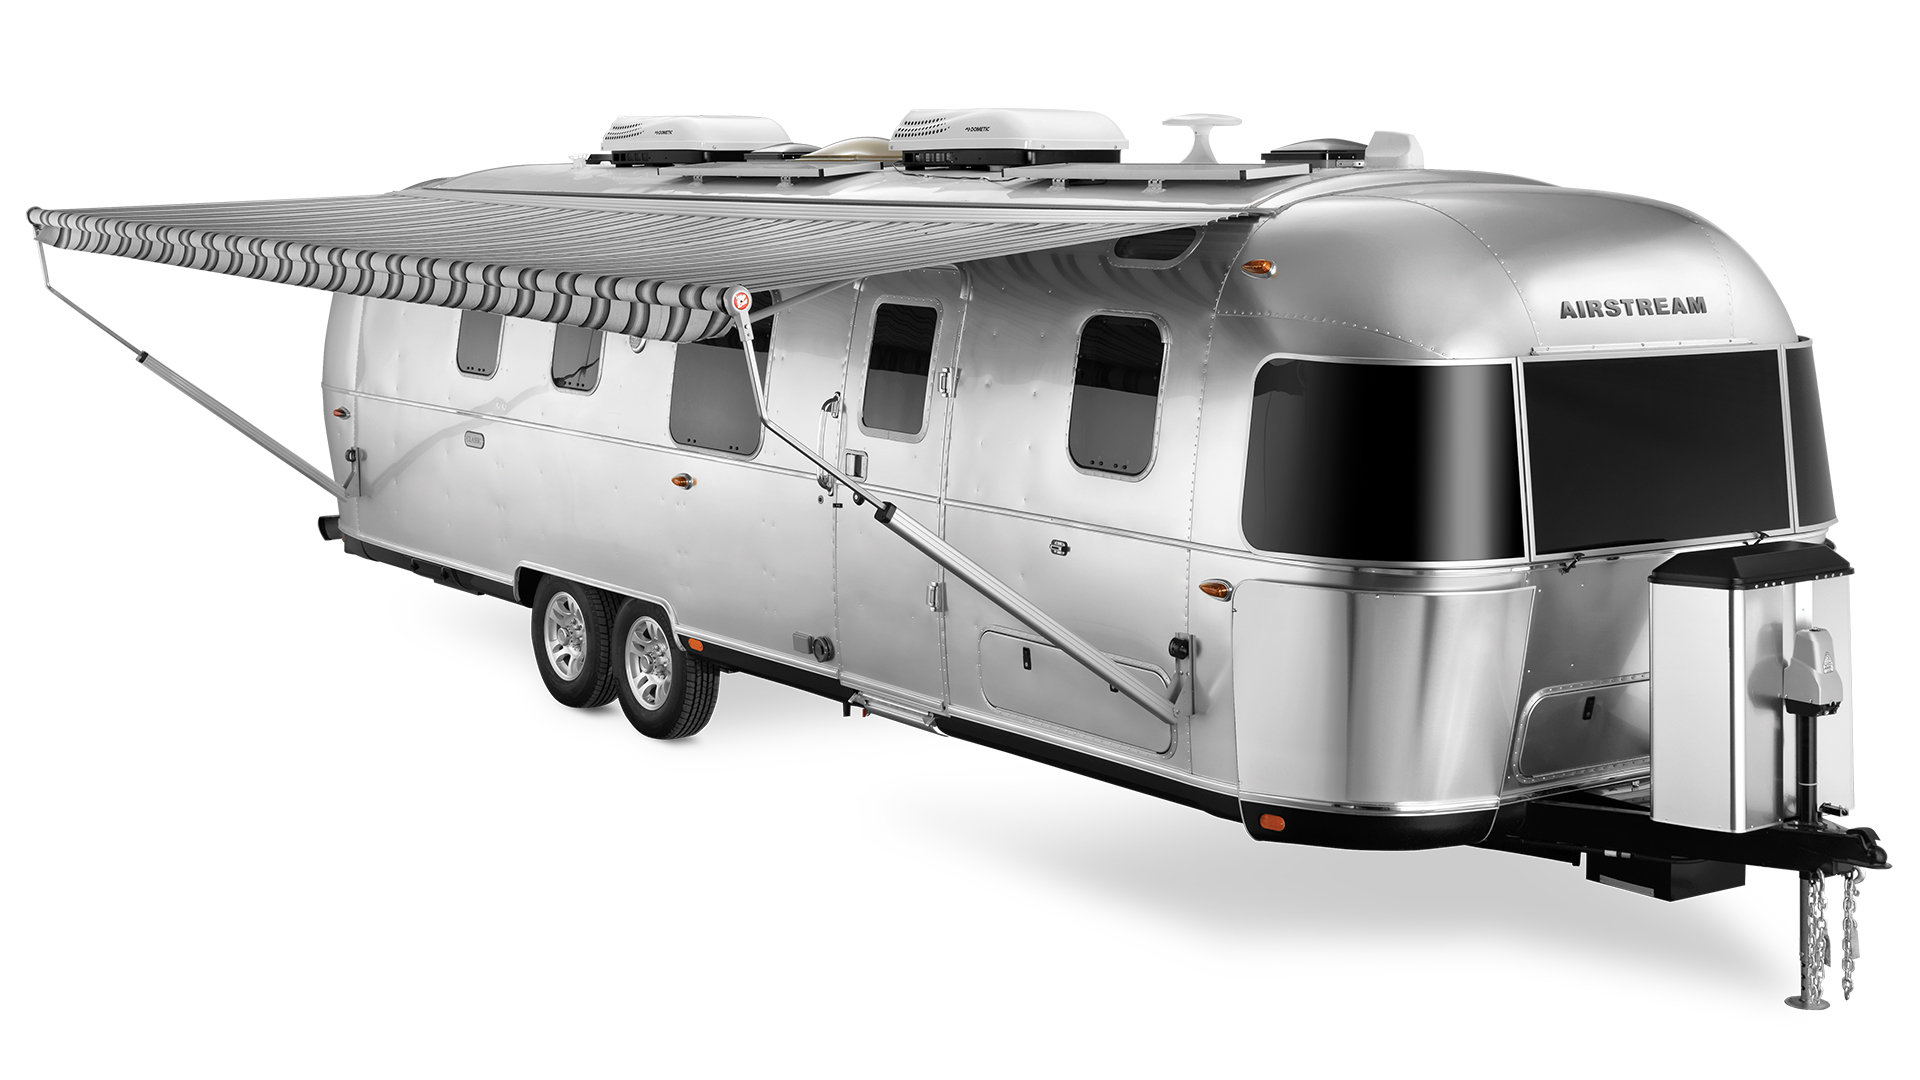 2020-Airstream-Classic-Exterior-Awning-Extended